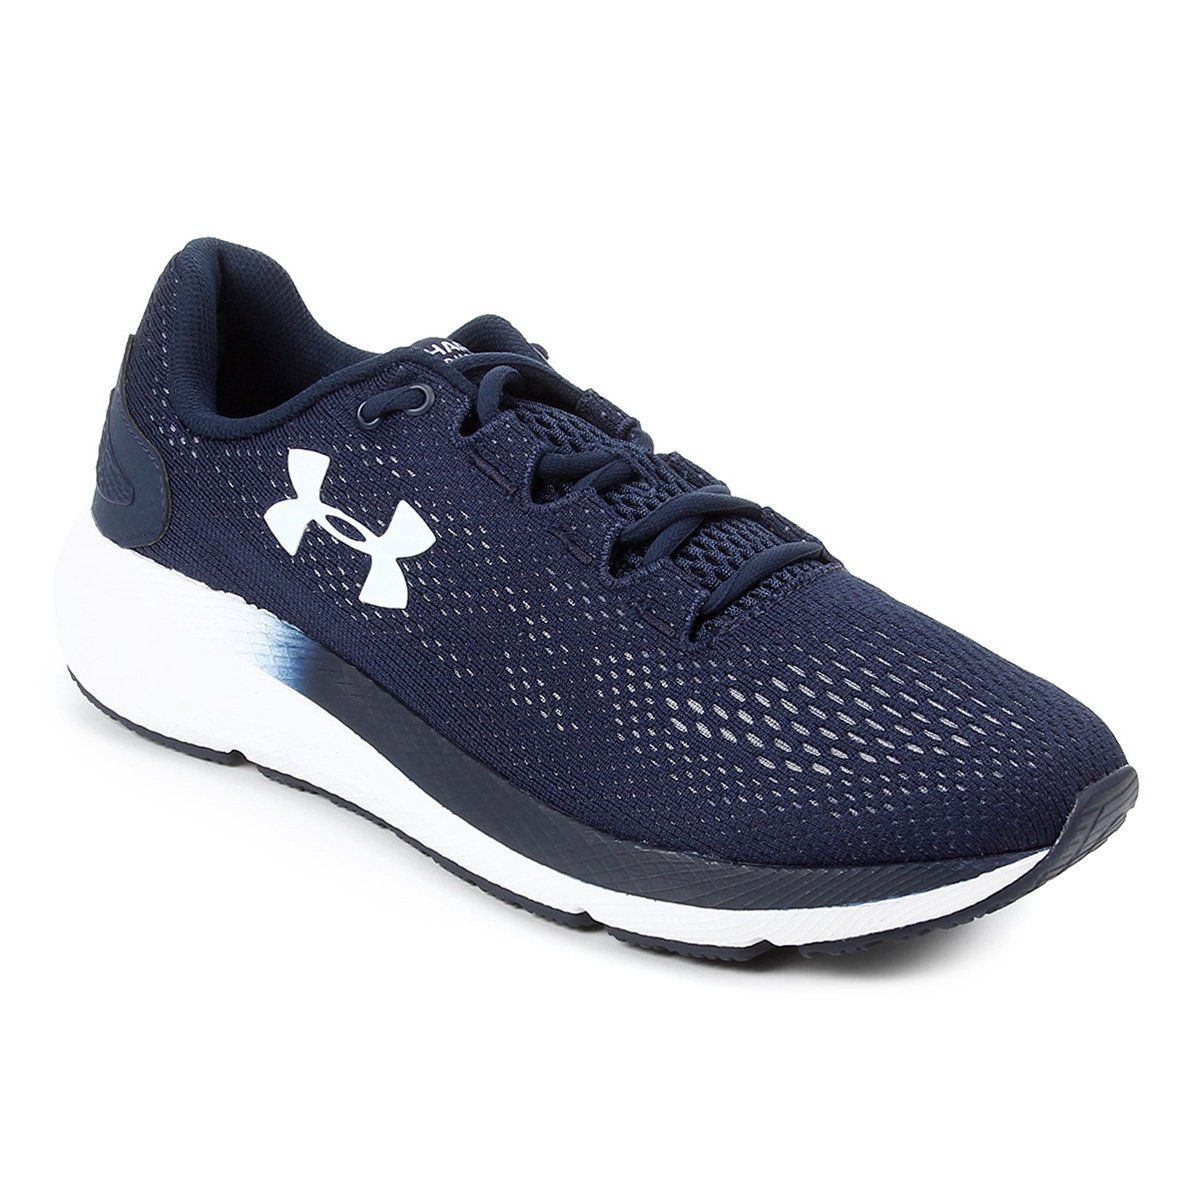 Tenis Caminhada Masculino Under Armour Charged Pur